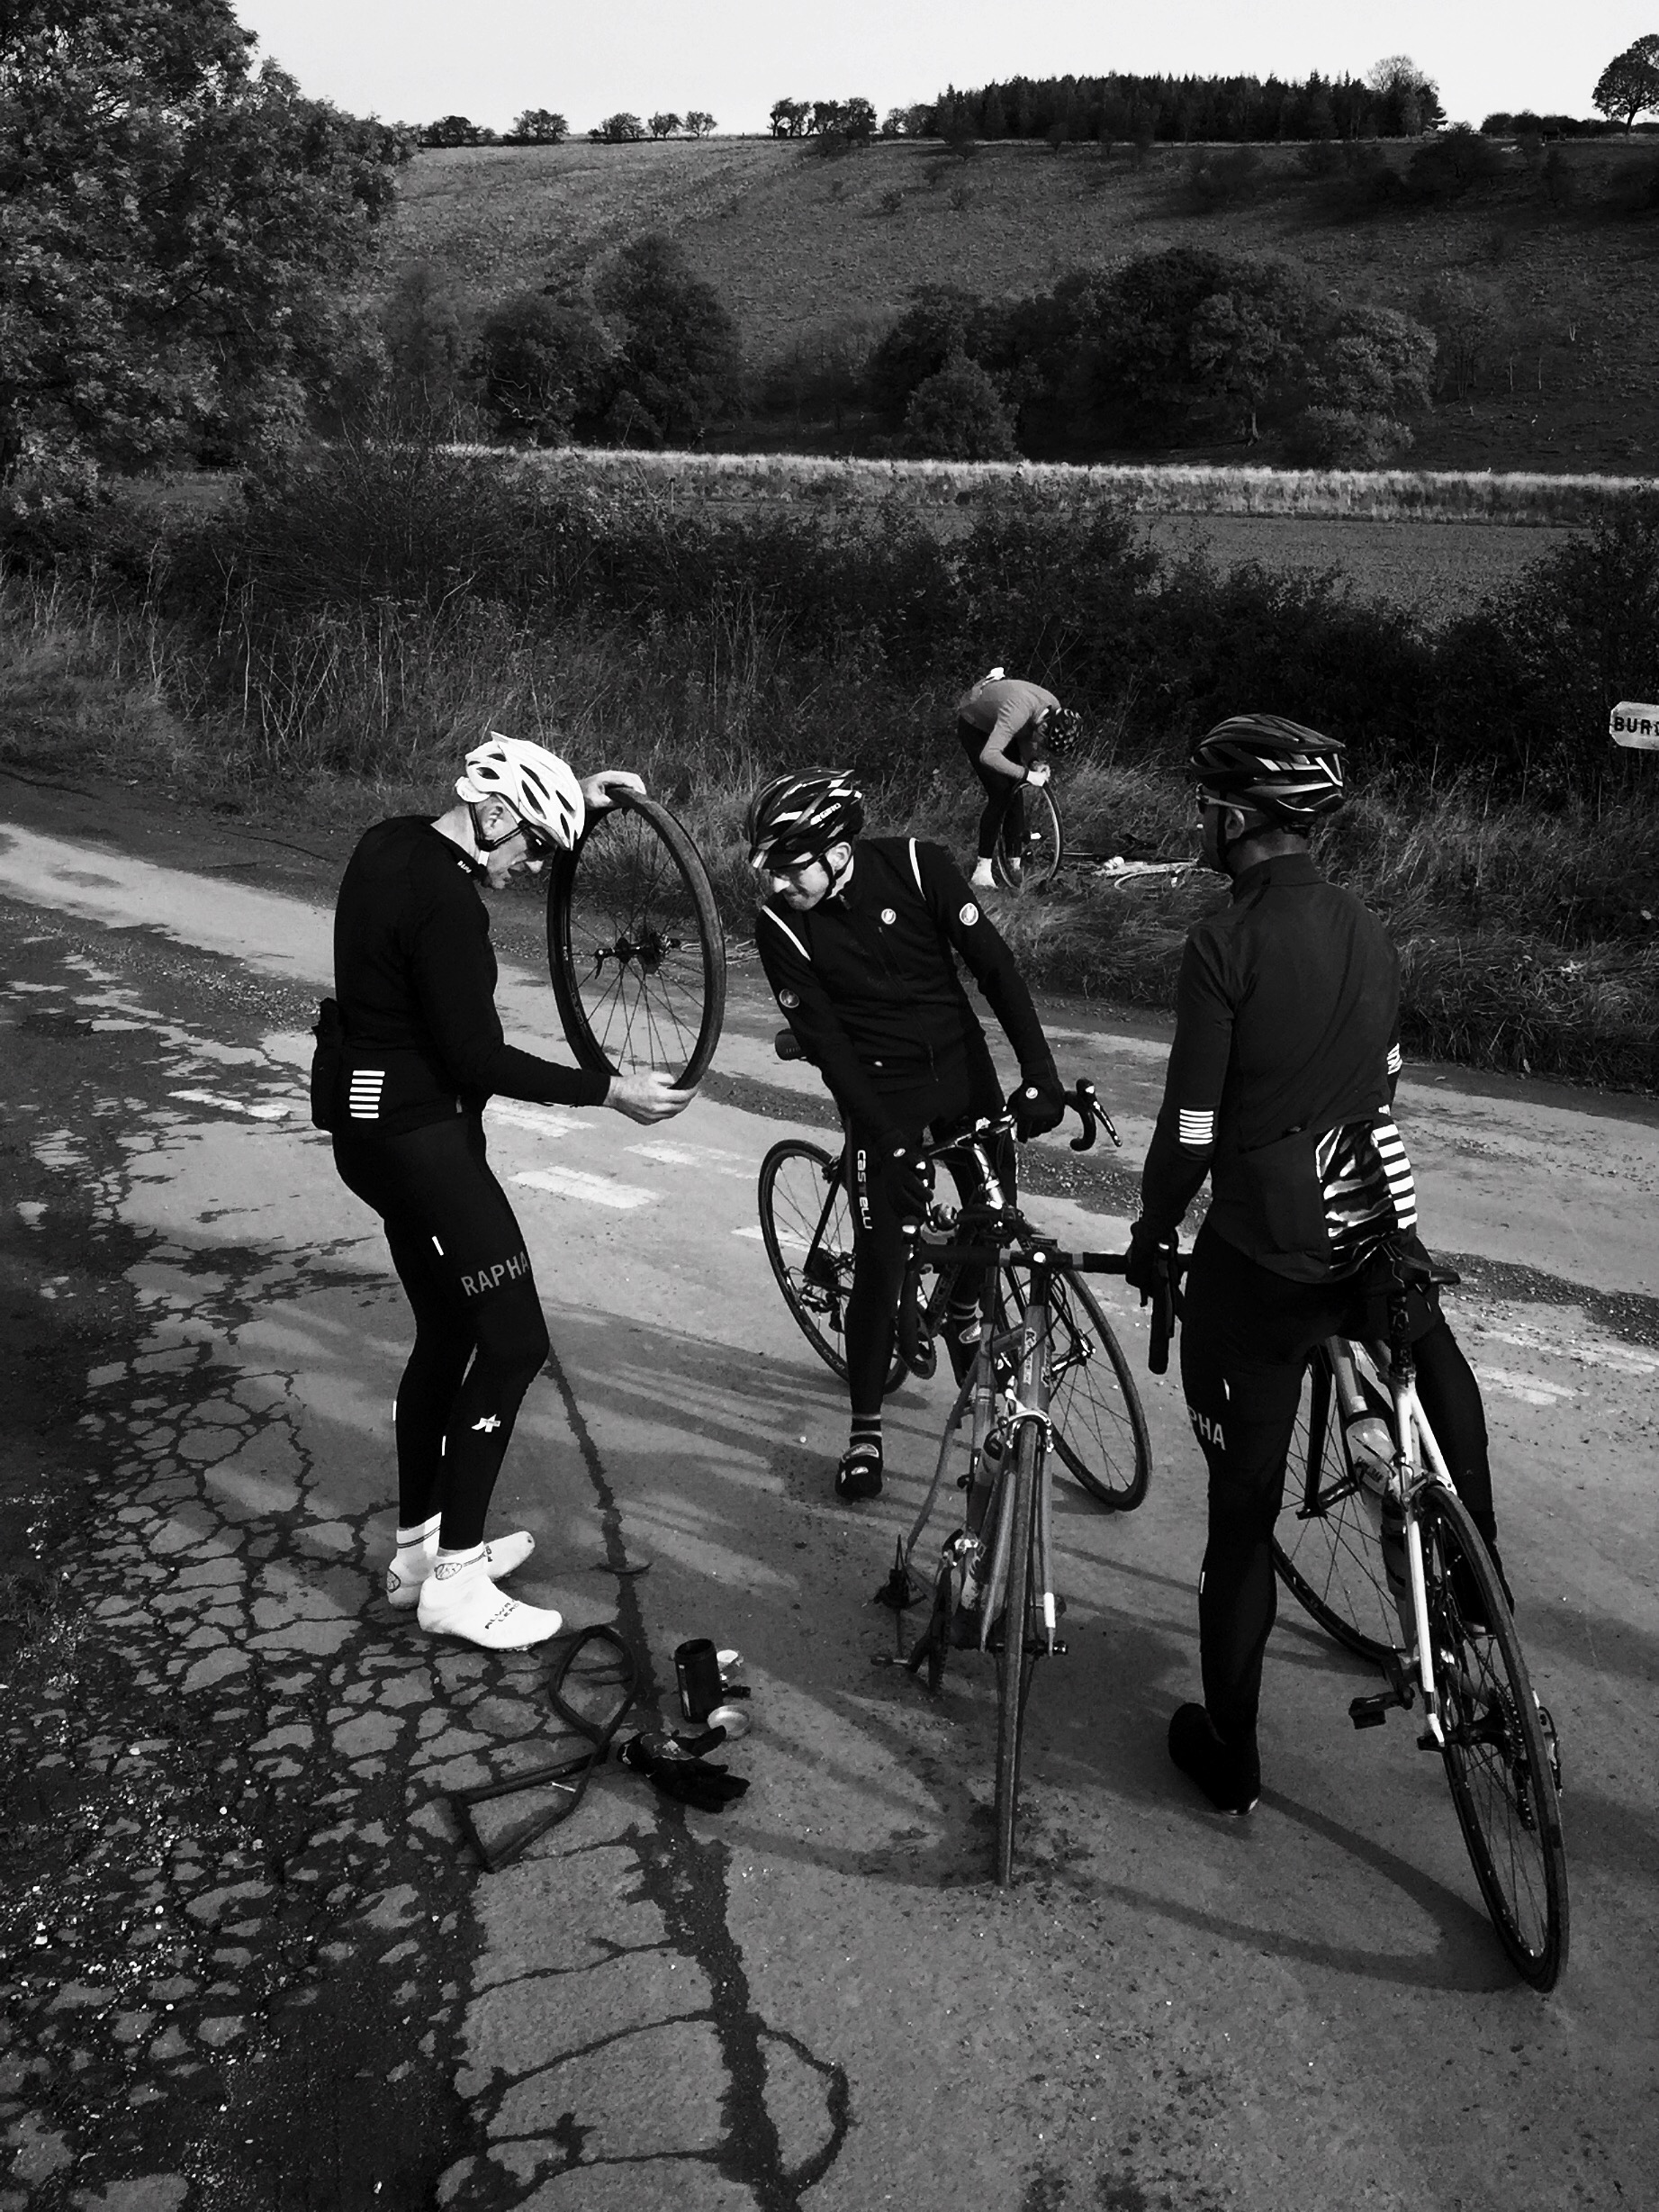 Puncture, and another puncture in the background. There were 10 punctures within four miles for this group.